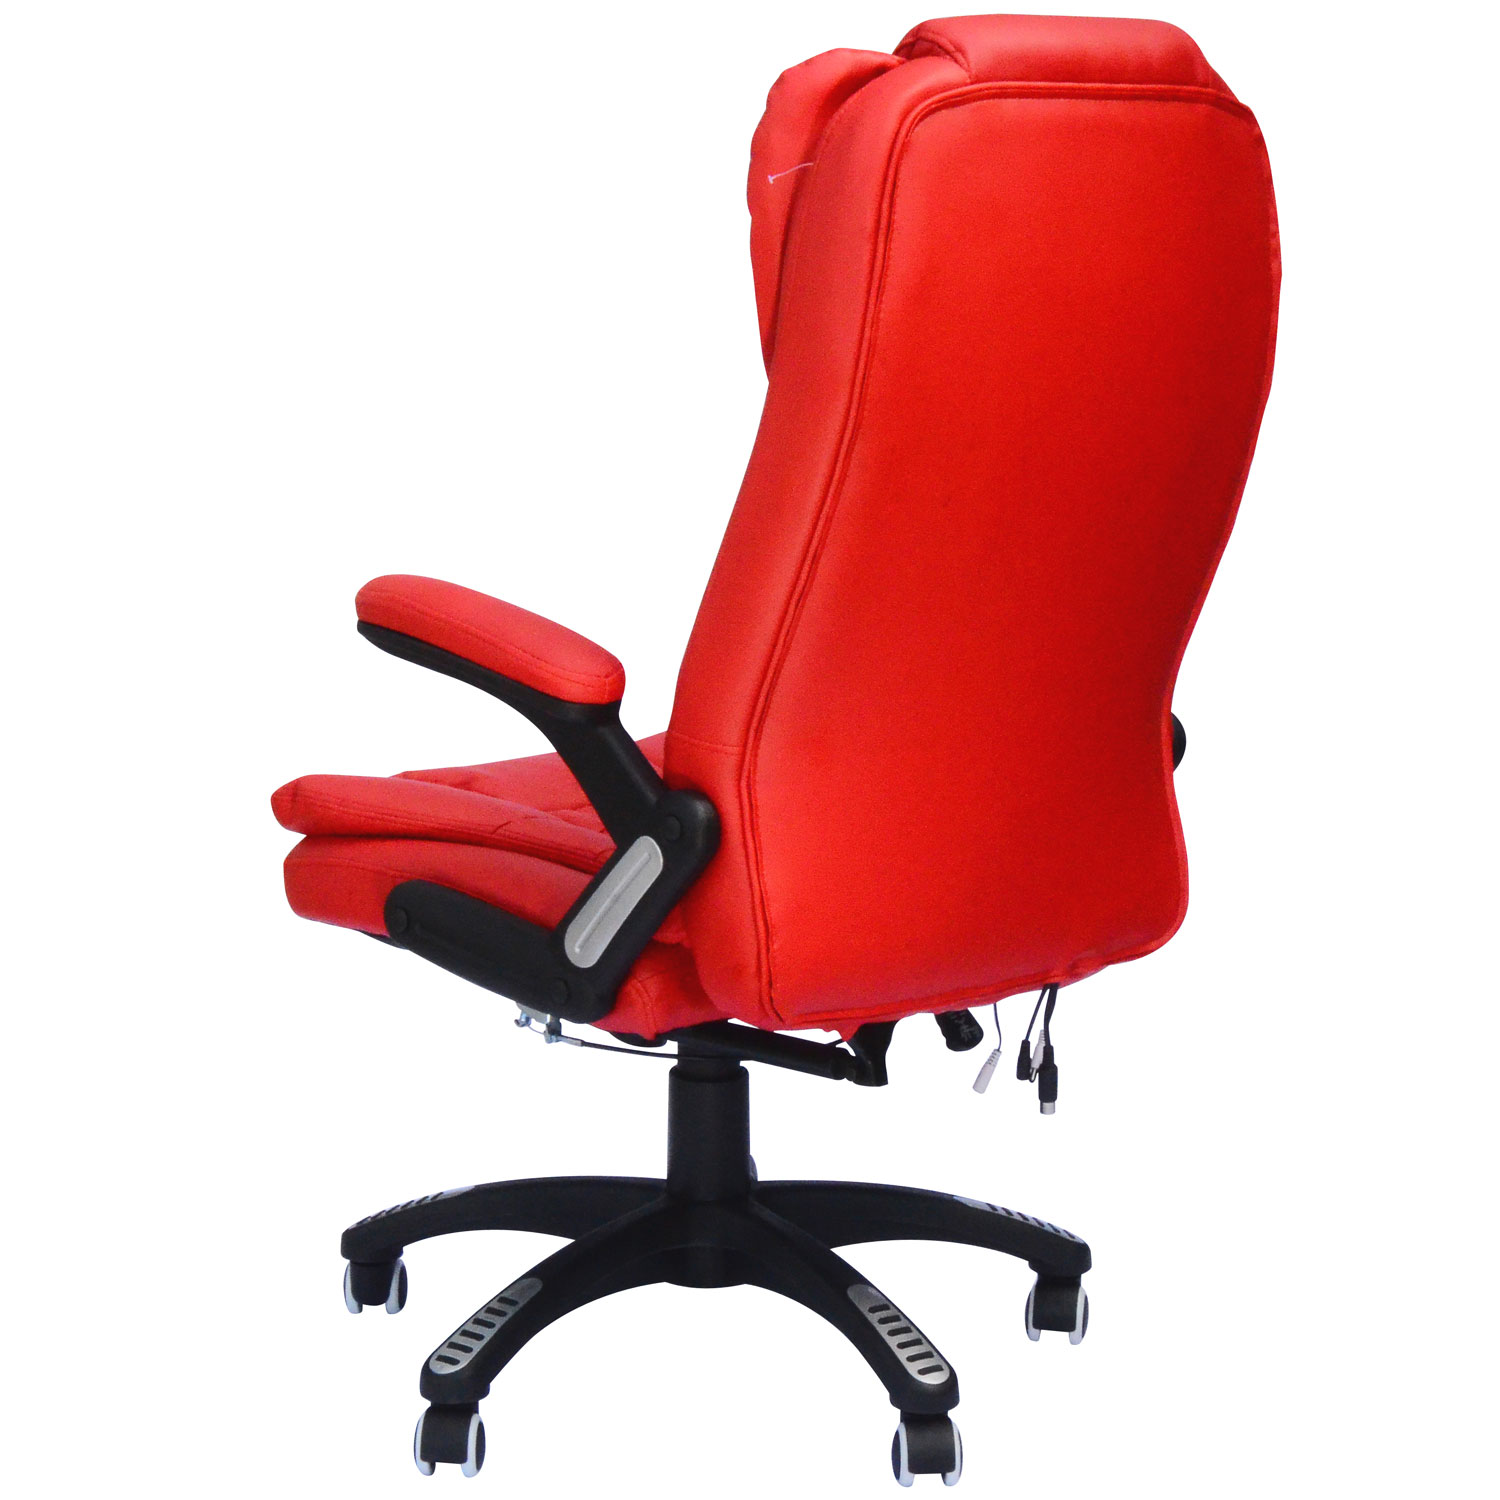 Hom Executive Ergonomic Heated Vibrating Massaging fice Chair